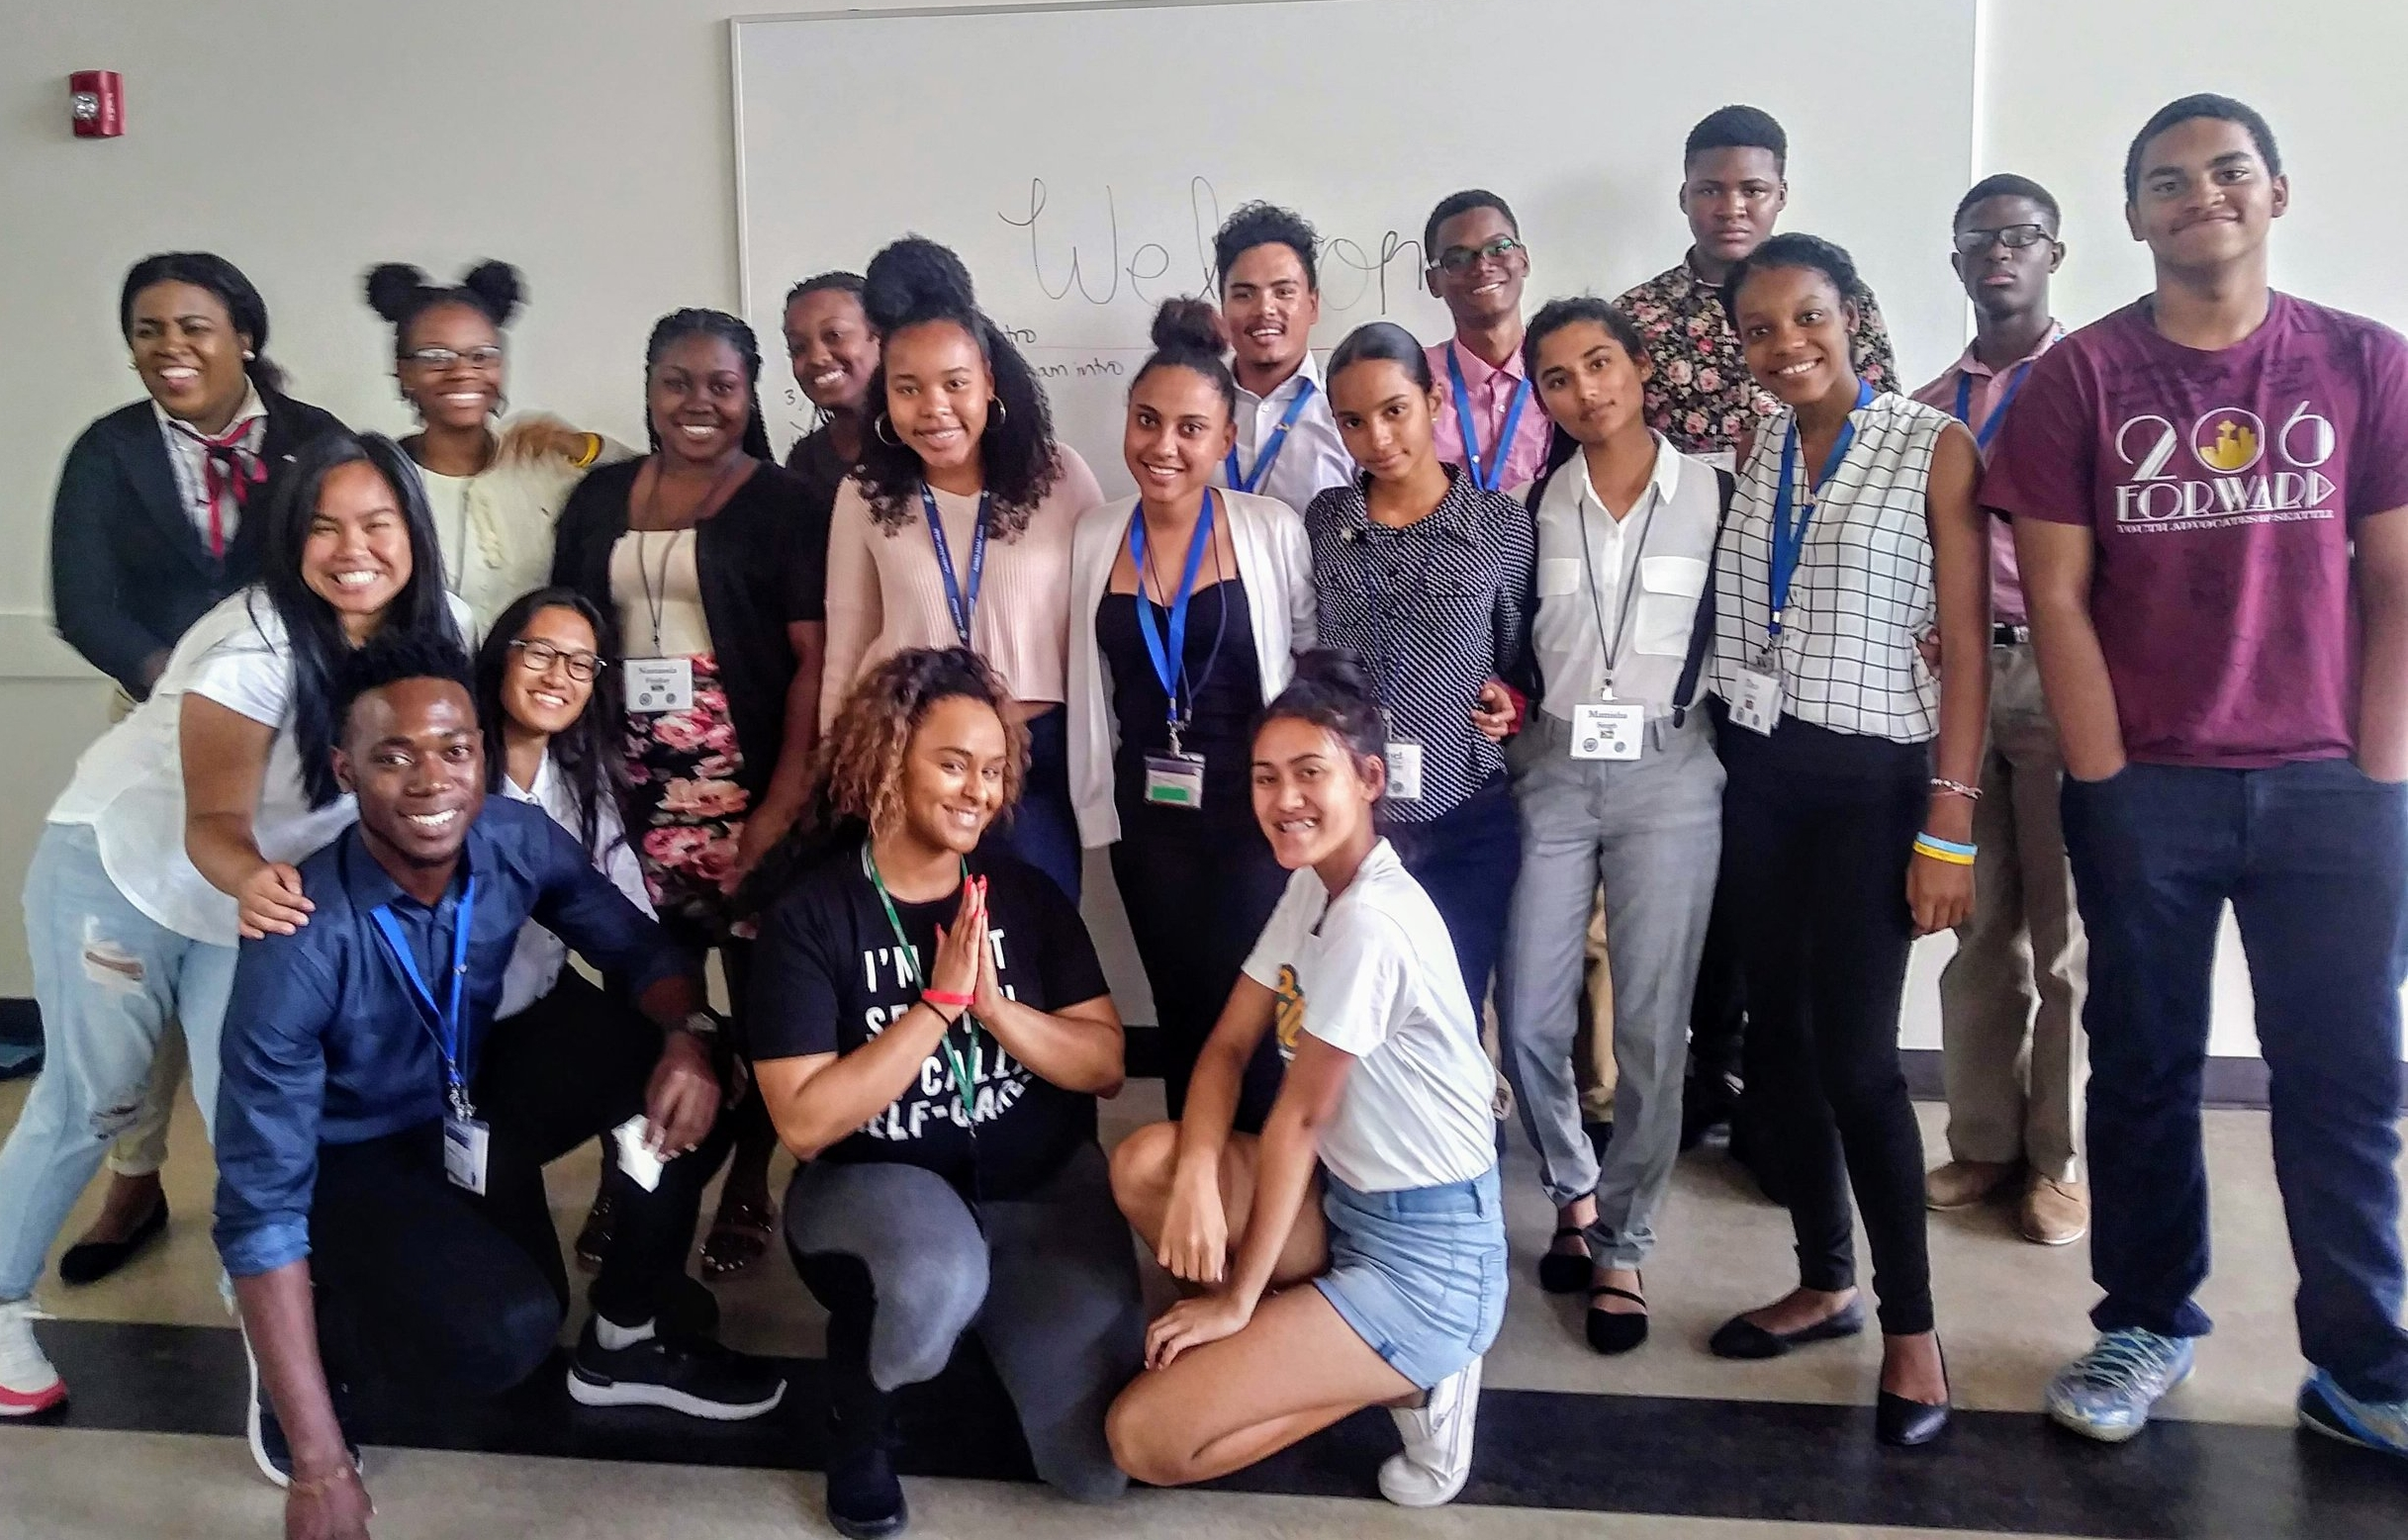 Carribean 2018 students meeting local advocacy group 206 Forward